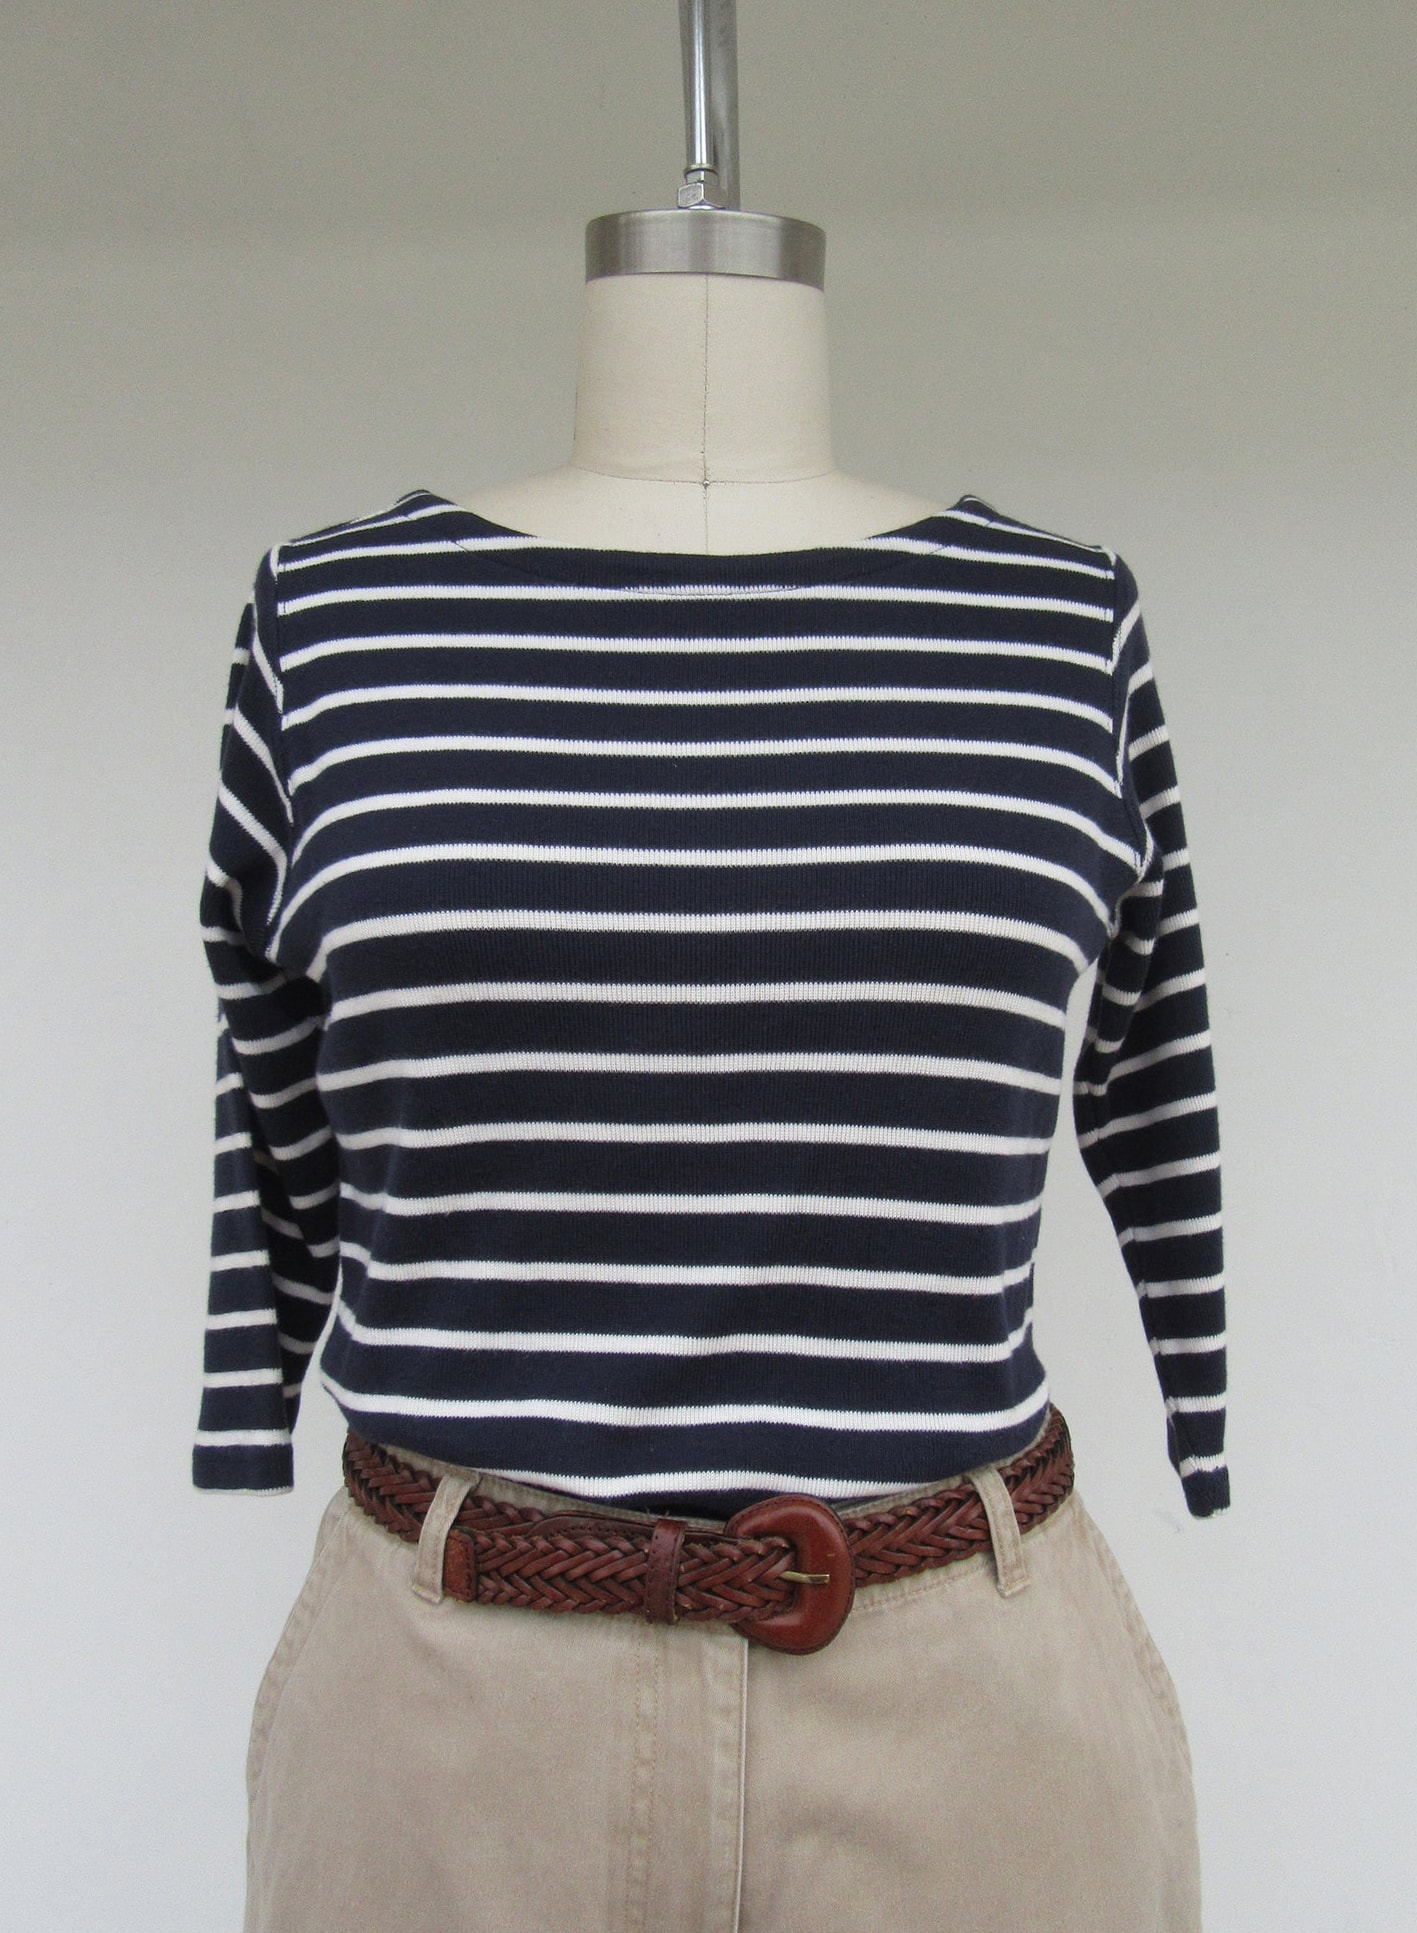 LL Bean 90s Striped Navy and White Cotton Long Sleeve Shirt | Minimal Cotton Striped Long Sleeve Top | M